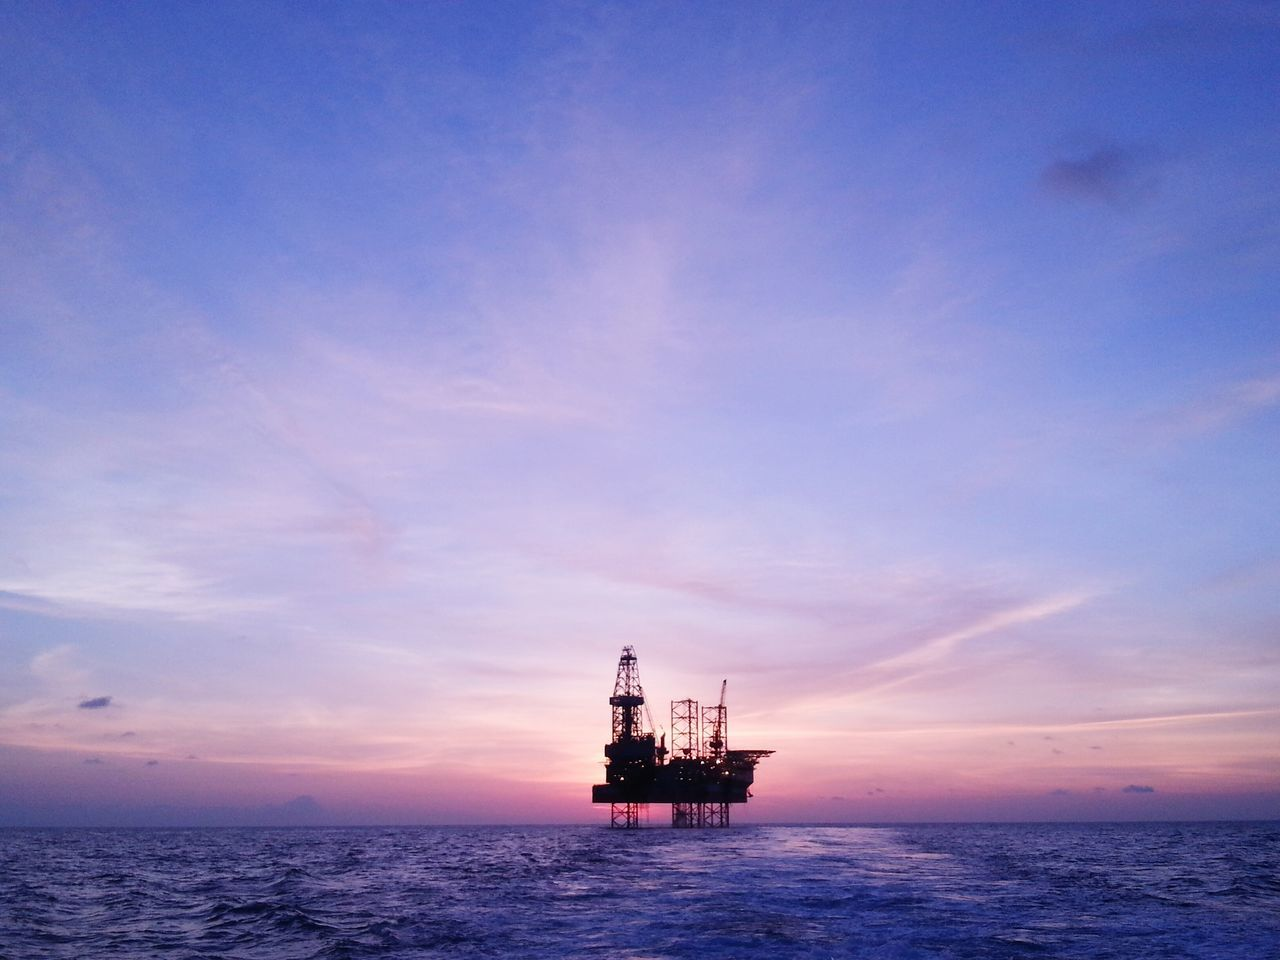 Oil Rig Maersk convincer Creative Light And Shadow Market Bestsellers April 2016 Malaysia Terengganu The Architect - 2017 EyeEm Awards